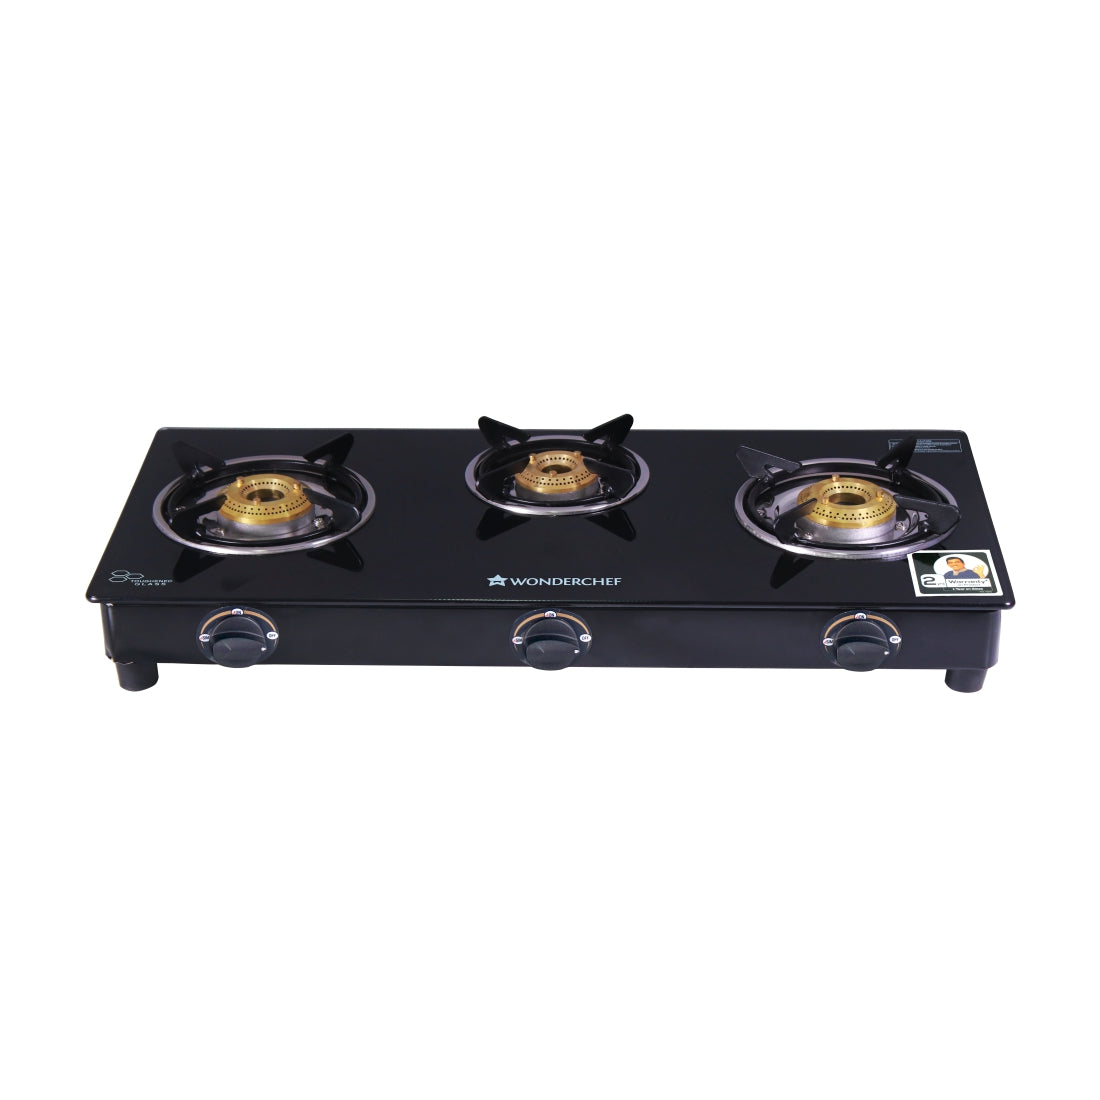 Acura 3 Burner Glass Cooktop